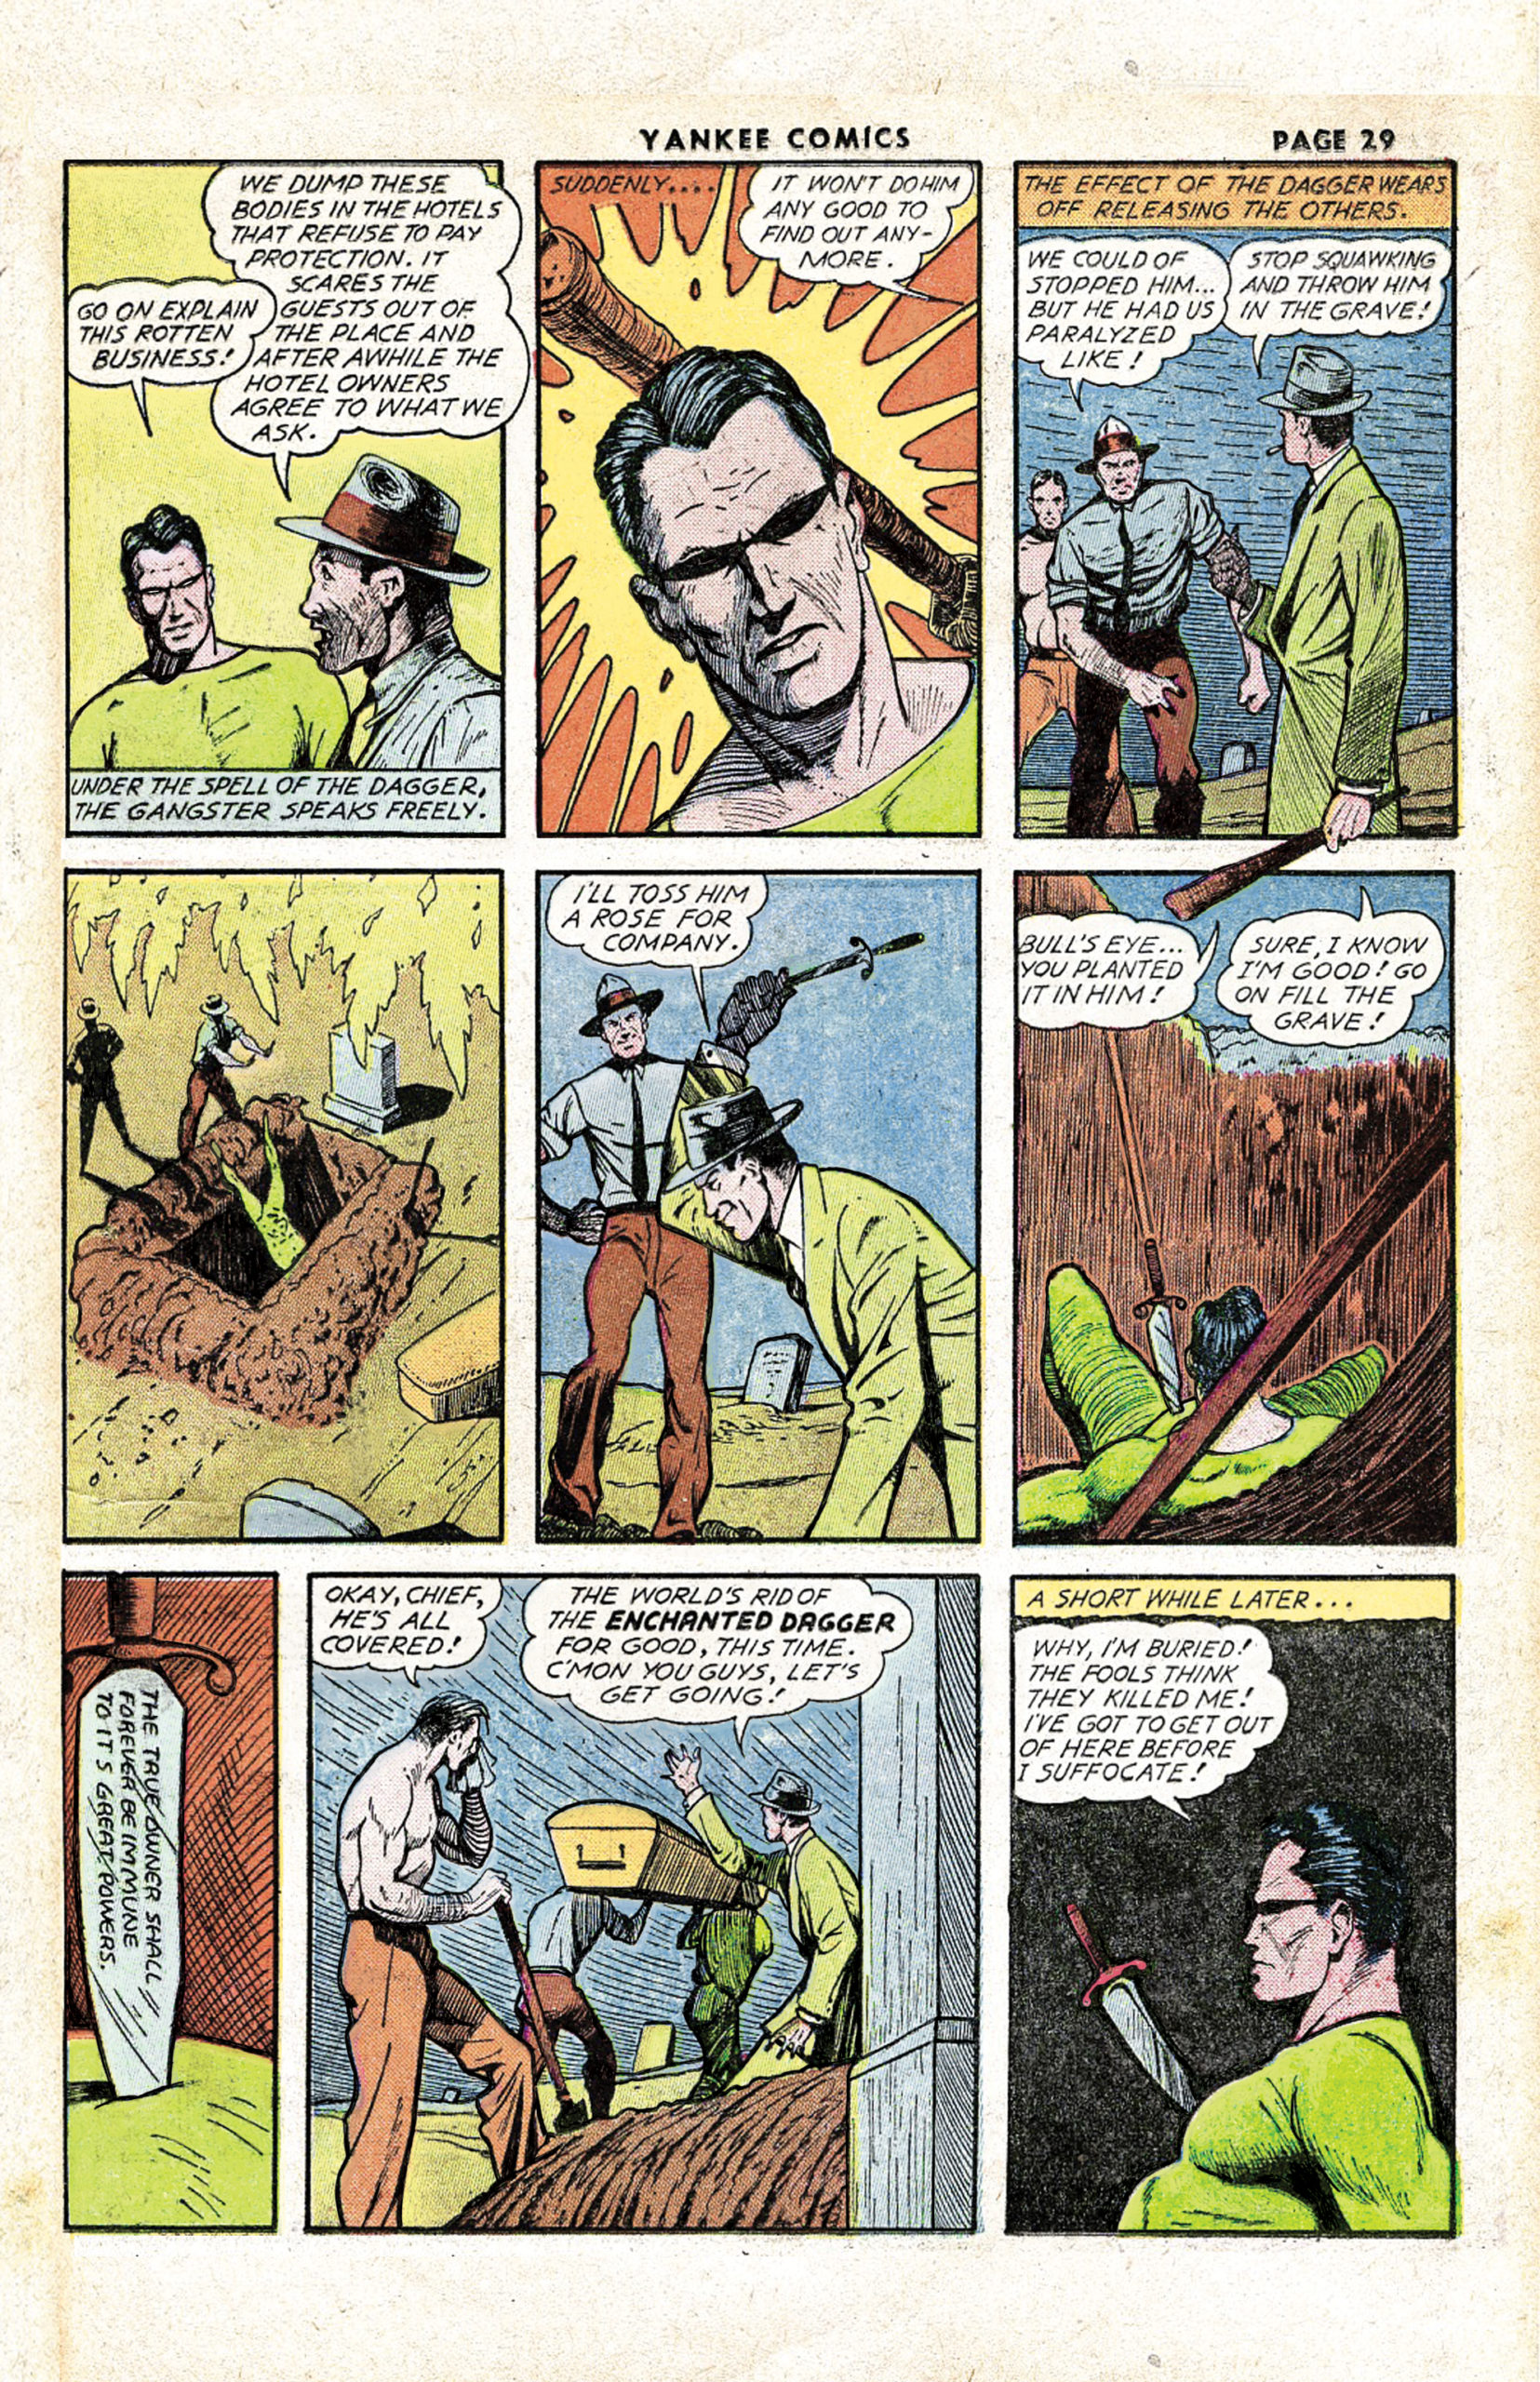 The Enchanted Dagger #5 – Page 20 (Classic EDag #3)